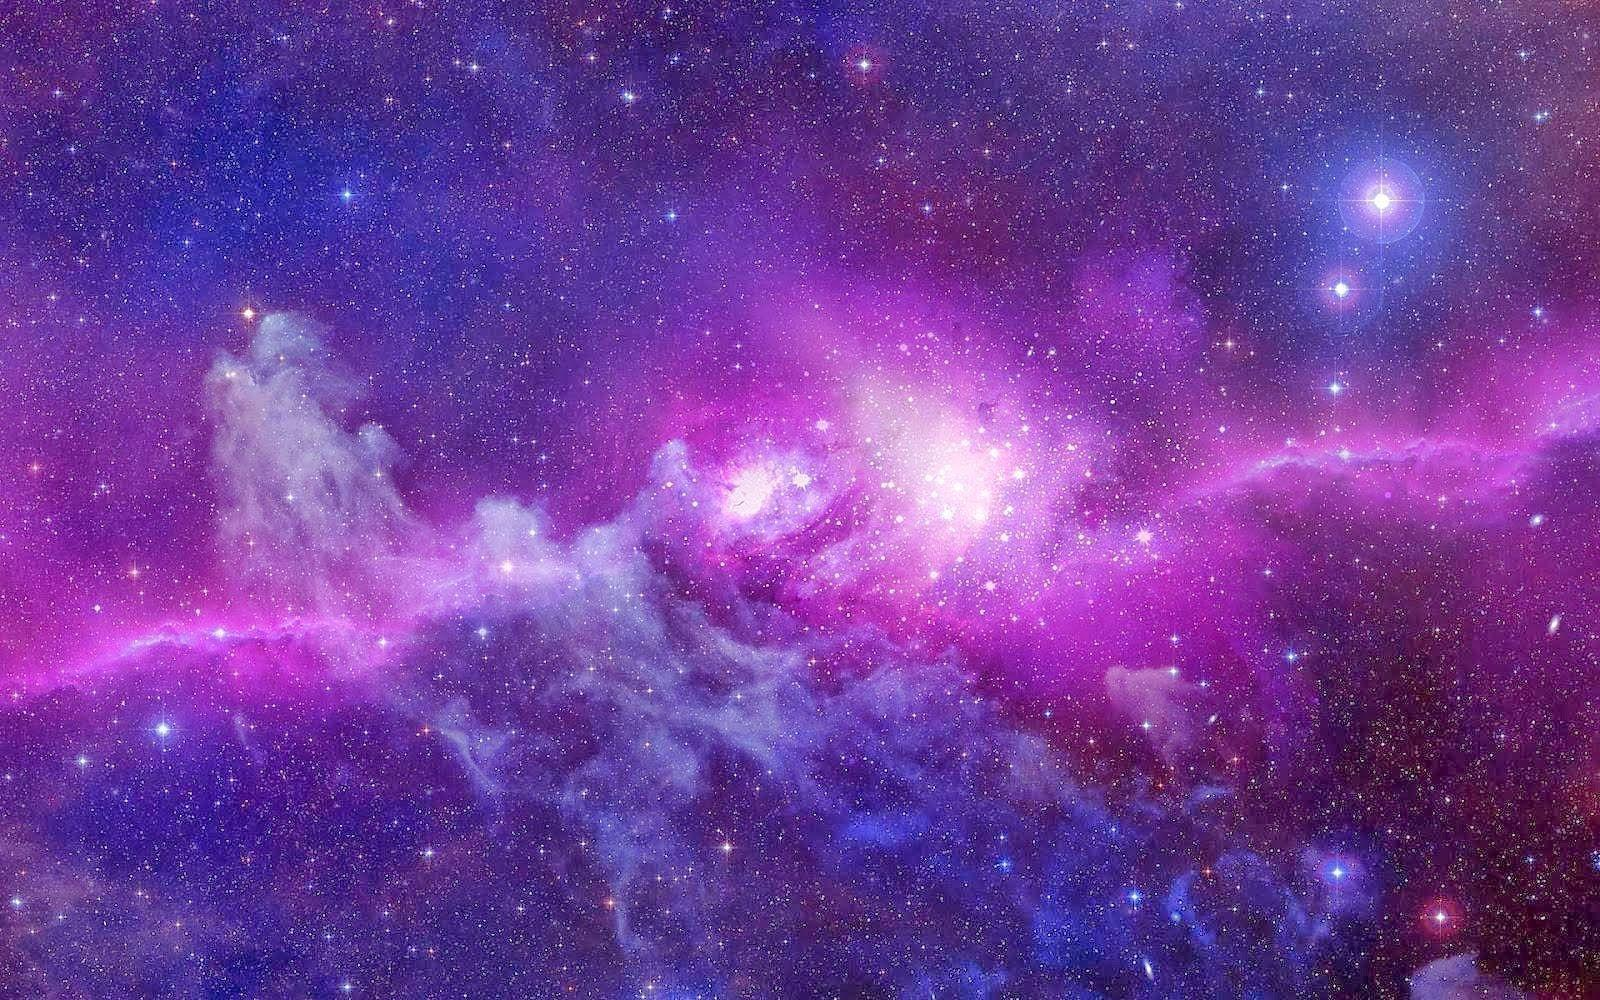 HD Wallpapers Desktop: Galaxy 4 HD Wallpapers